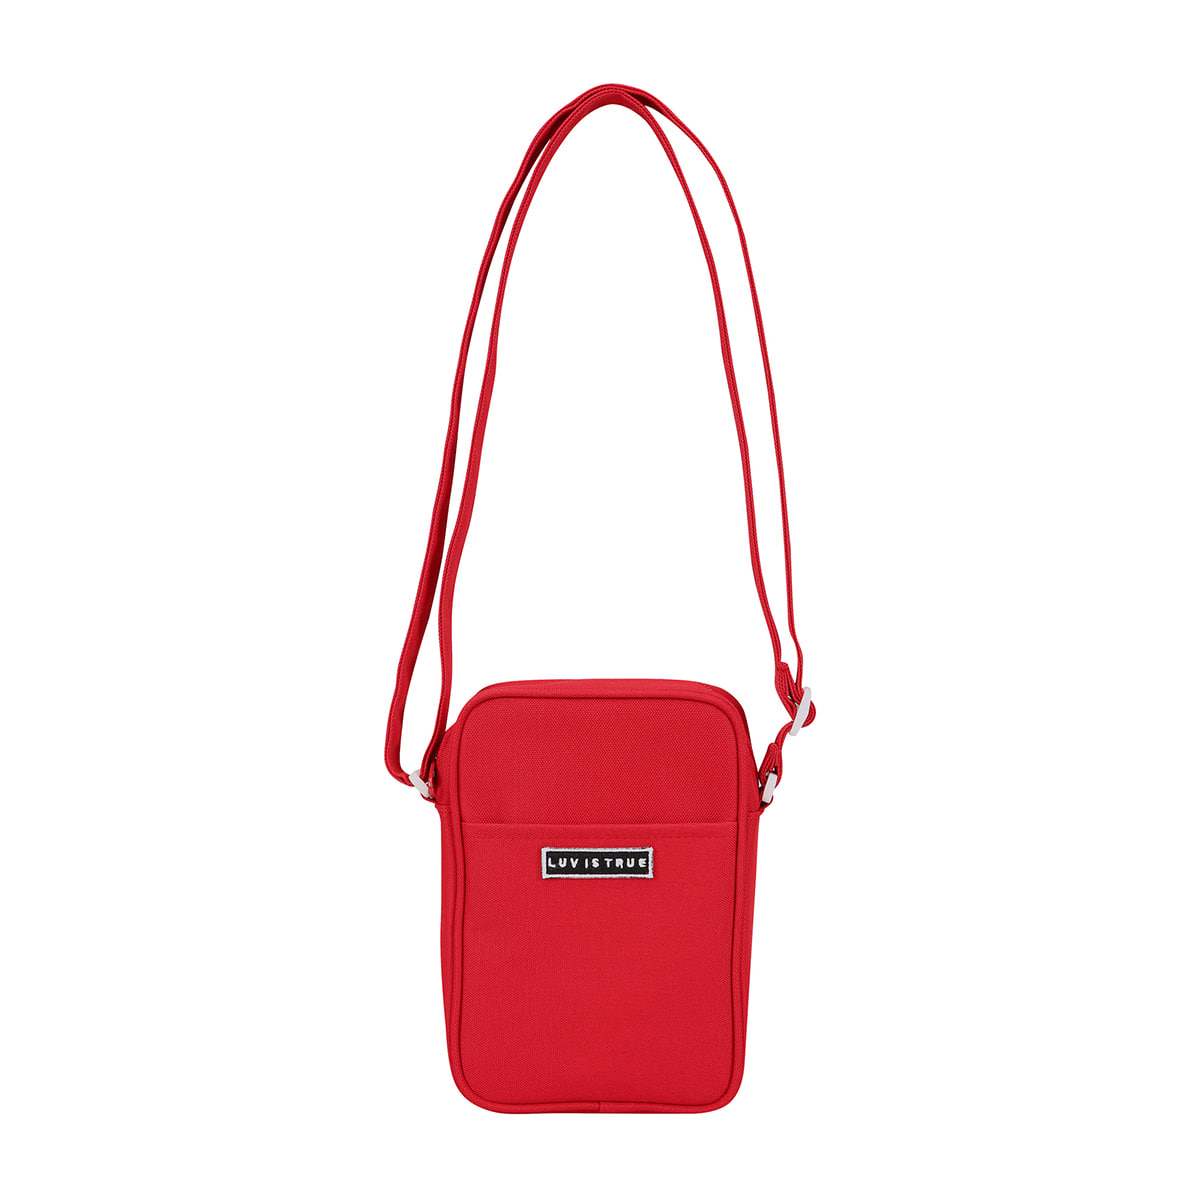 (UNISEX)BG CROSS BAG(RED)